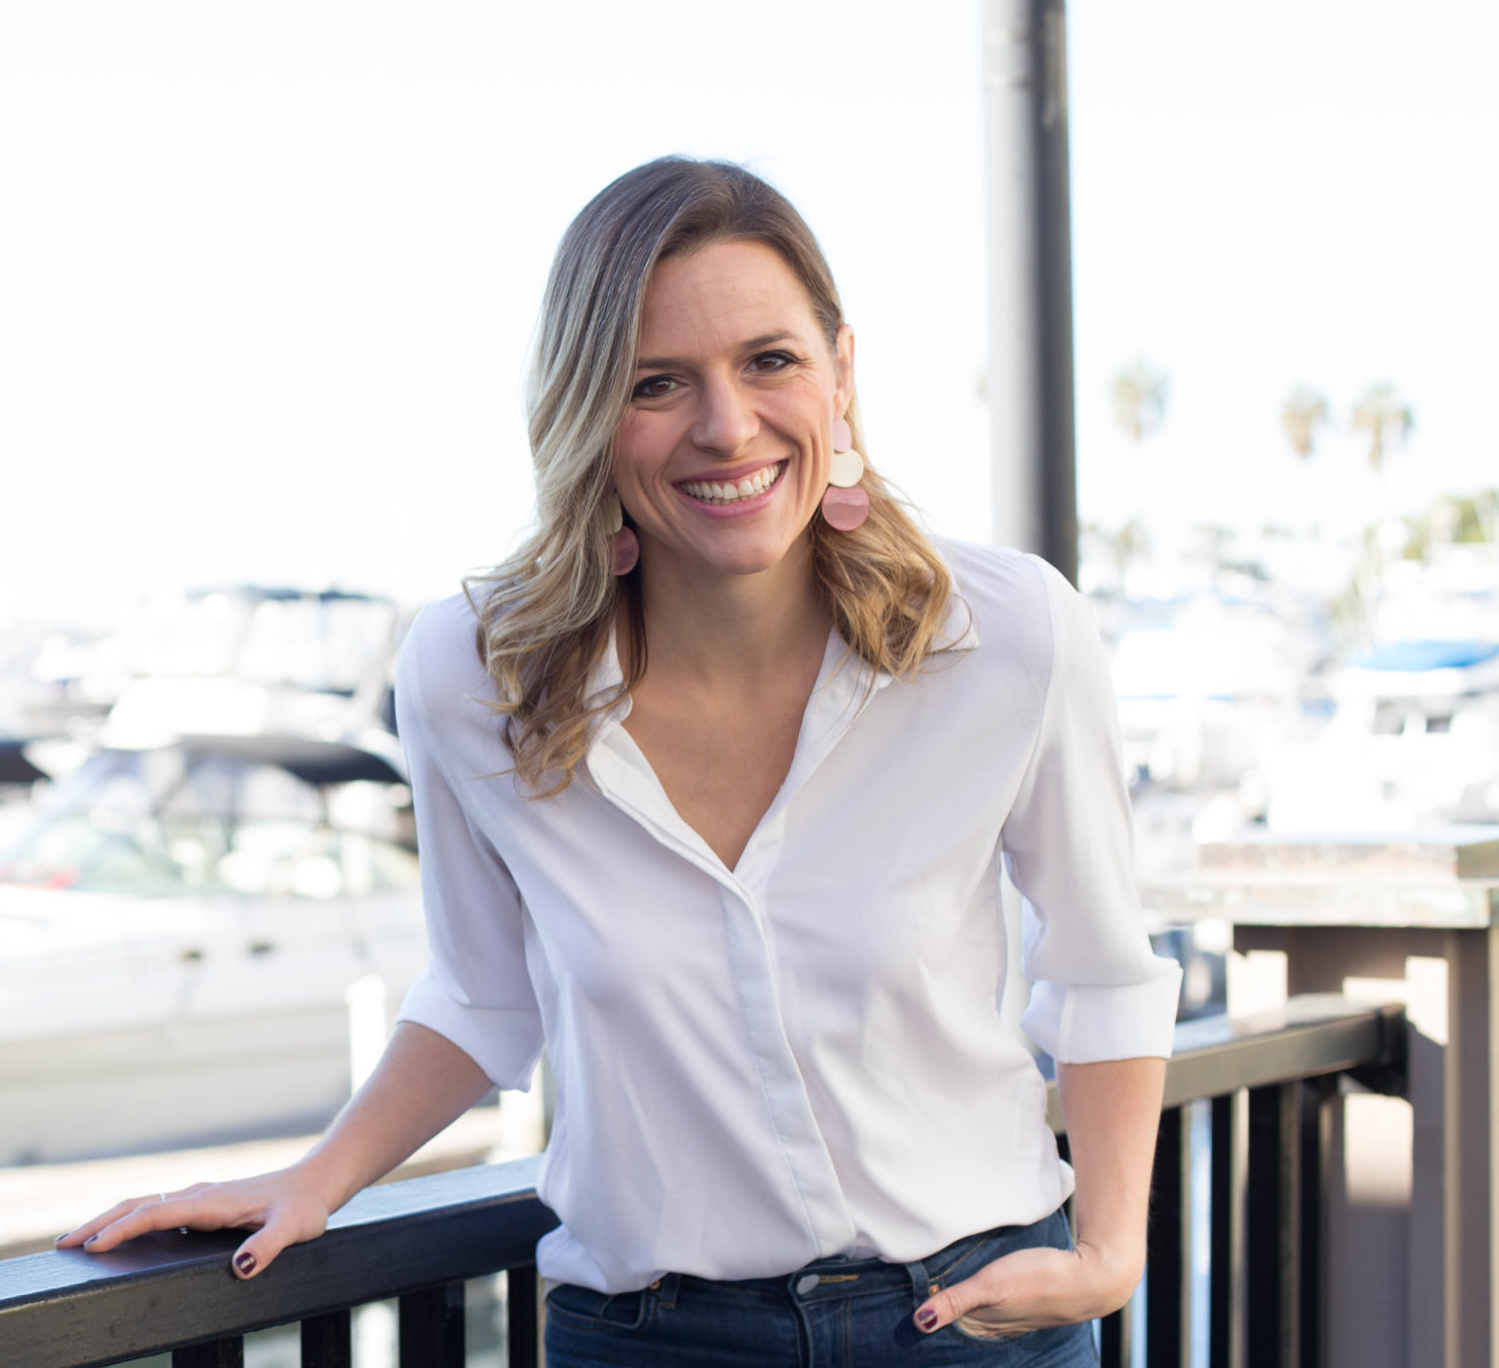 Dana Malstaff is the founder of Boss Mom. She helps other mothers raise babies and businesses offering resources and a support system. A big part of boss mom's support system is digital engagement in a Facebook group. Dana wrote the book boss mom, back in 2015, she is a master content strategists podcast, or speaker coach, as well as being mom and CEO. Image courtesy of Dana Malstaff.